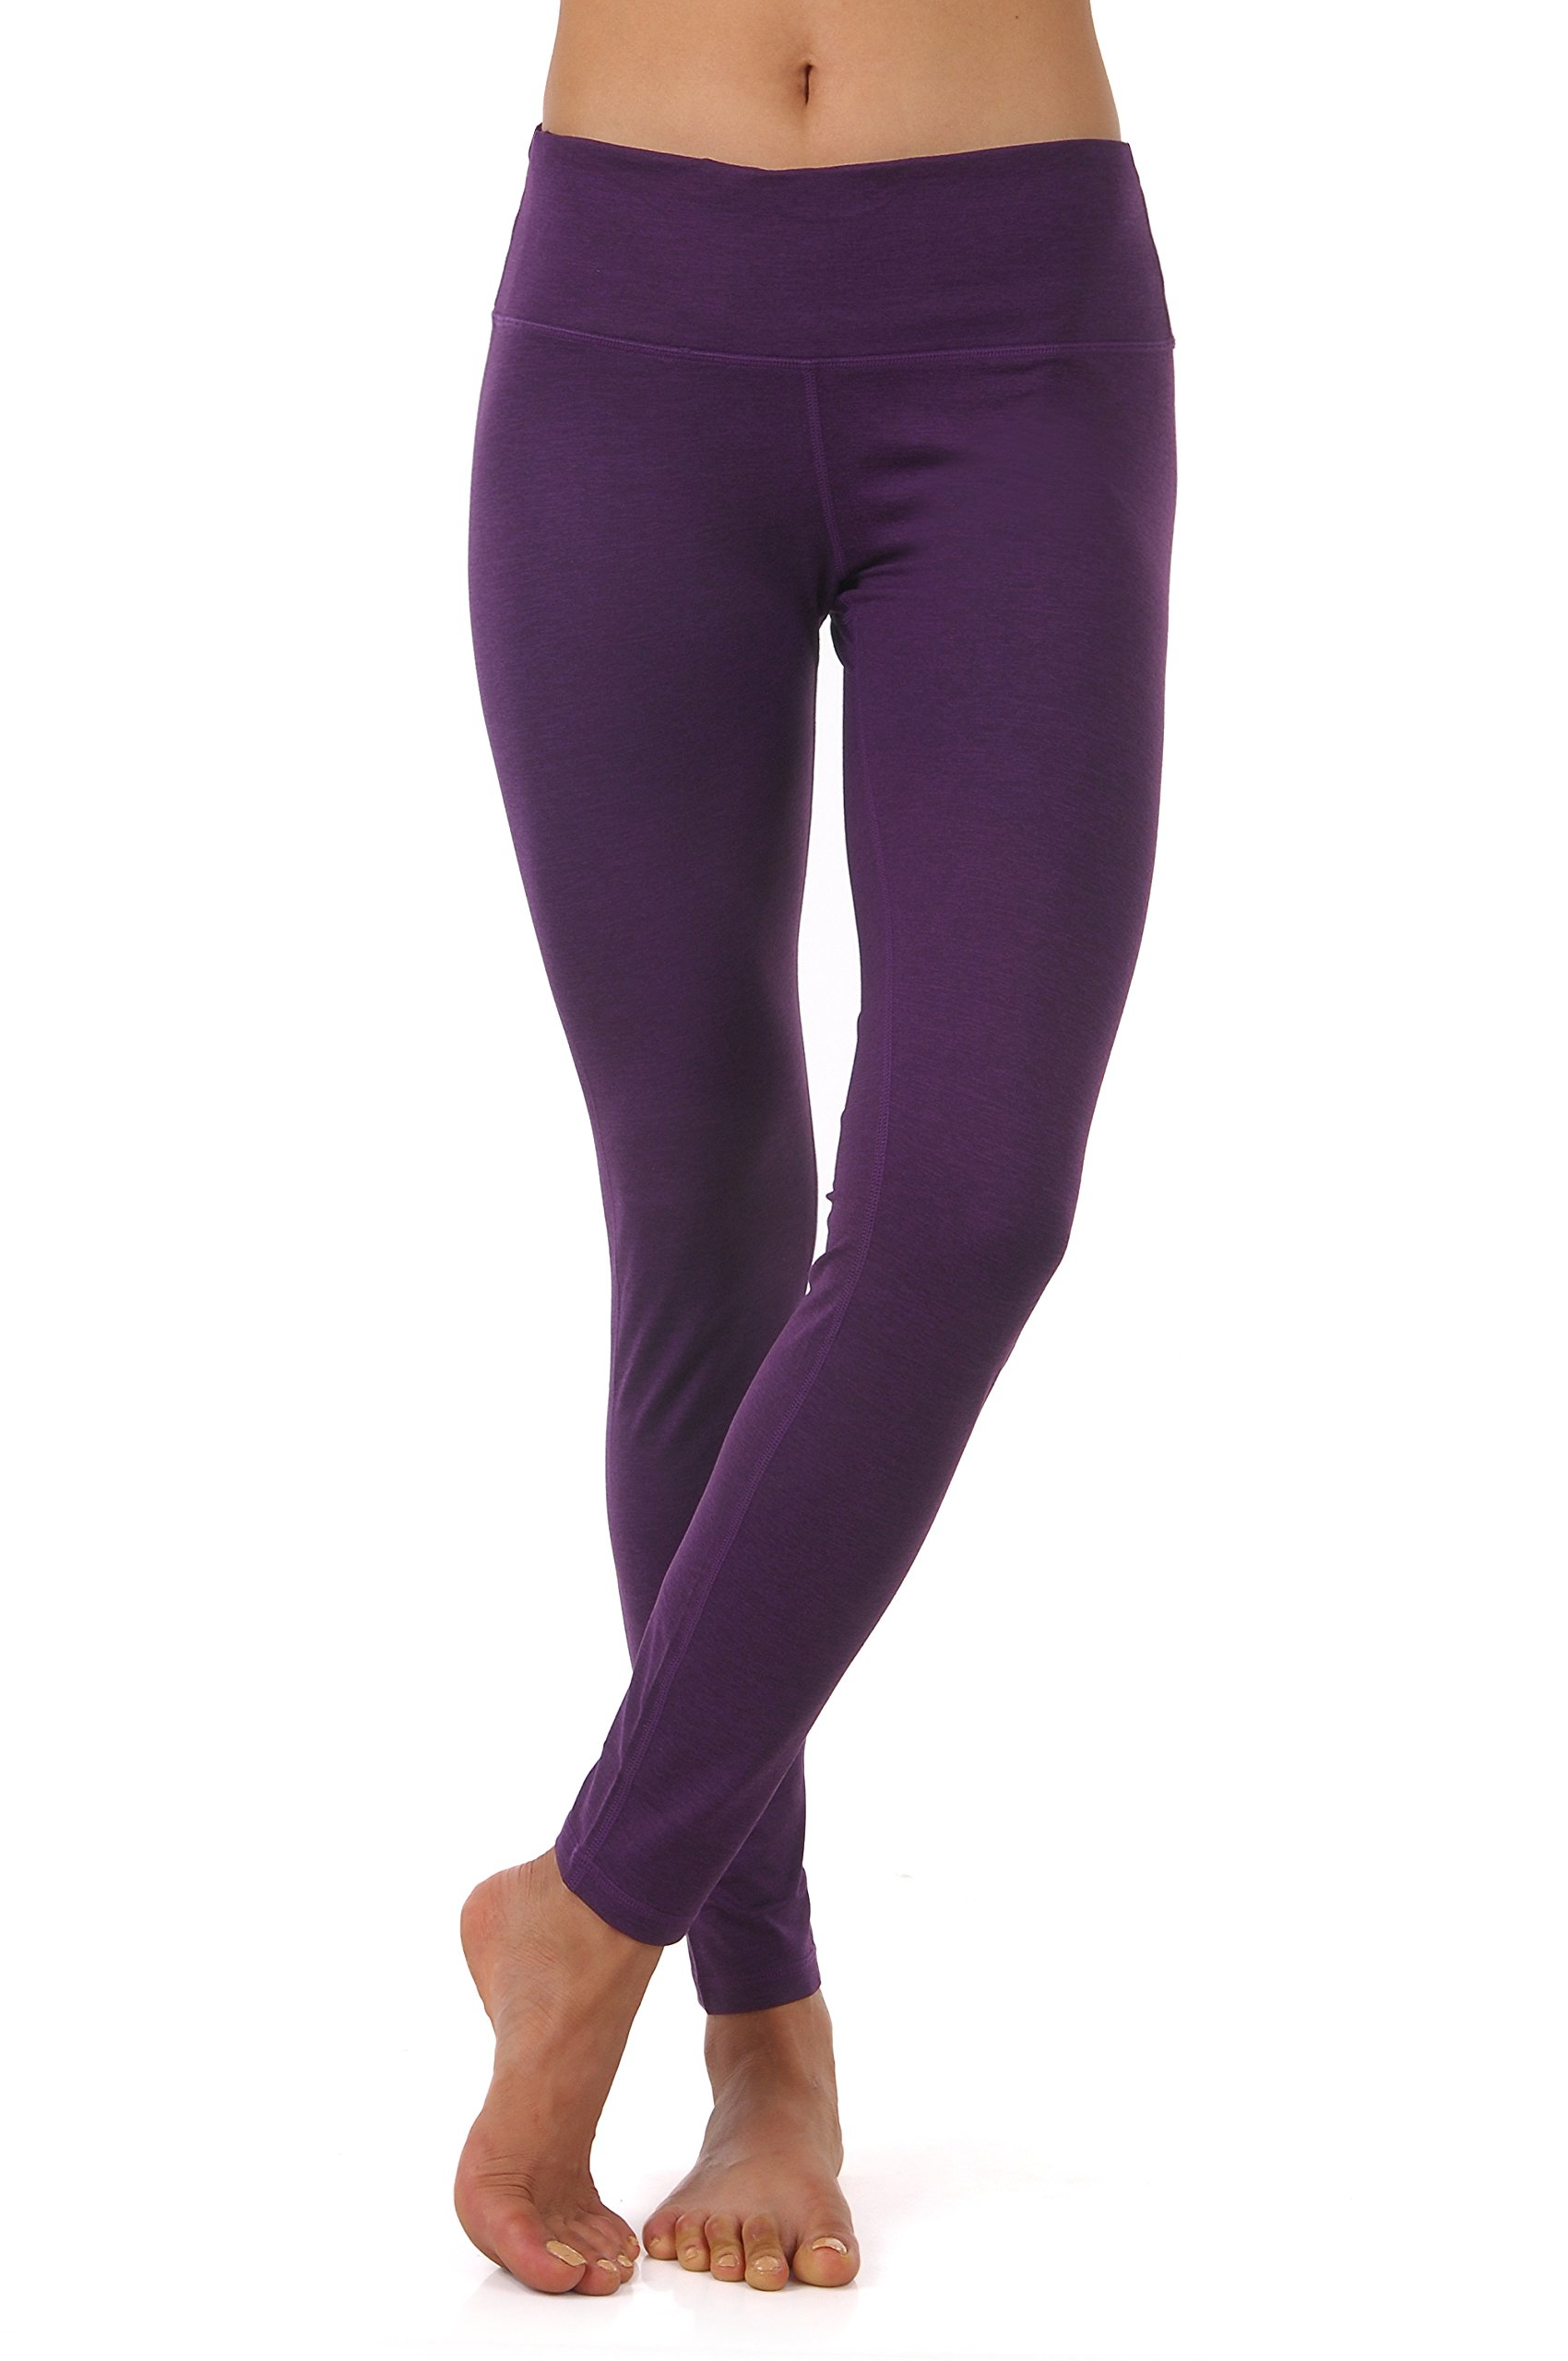 ZEROGSC Women's Yoga Pants - Workout Running Tummy Control Stretch Power Flex Long/Capris Leggings